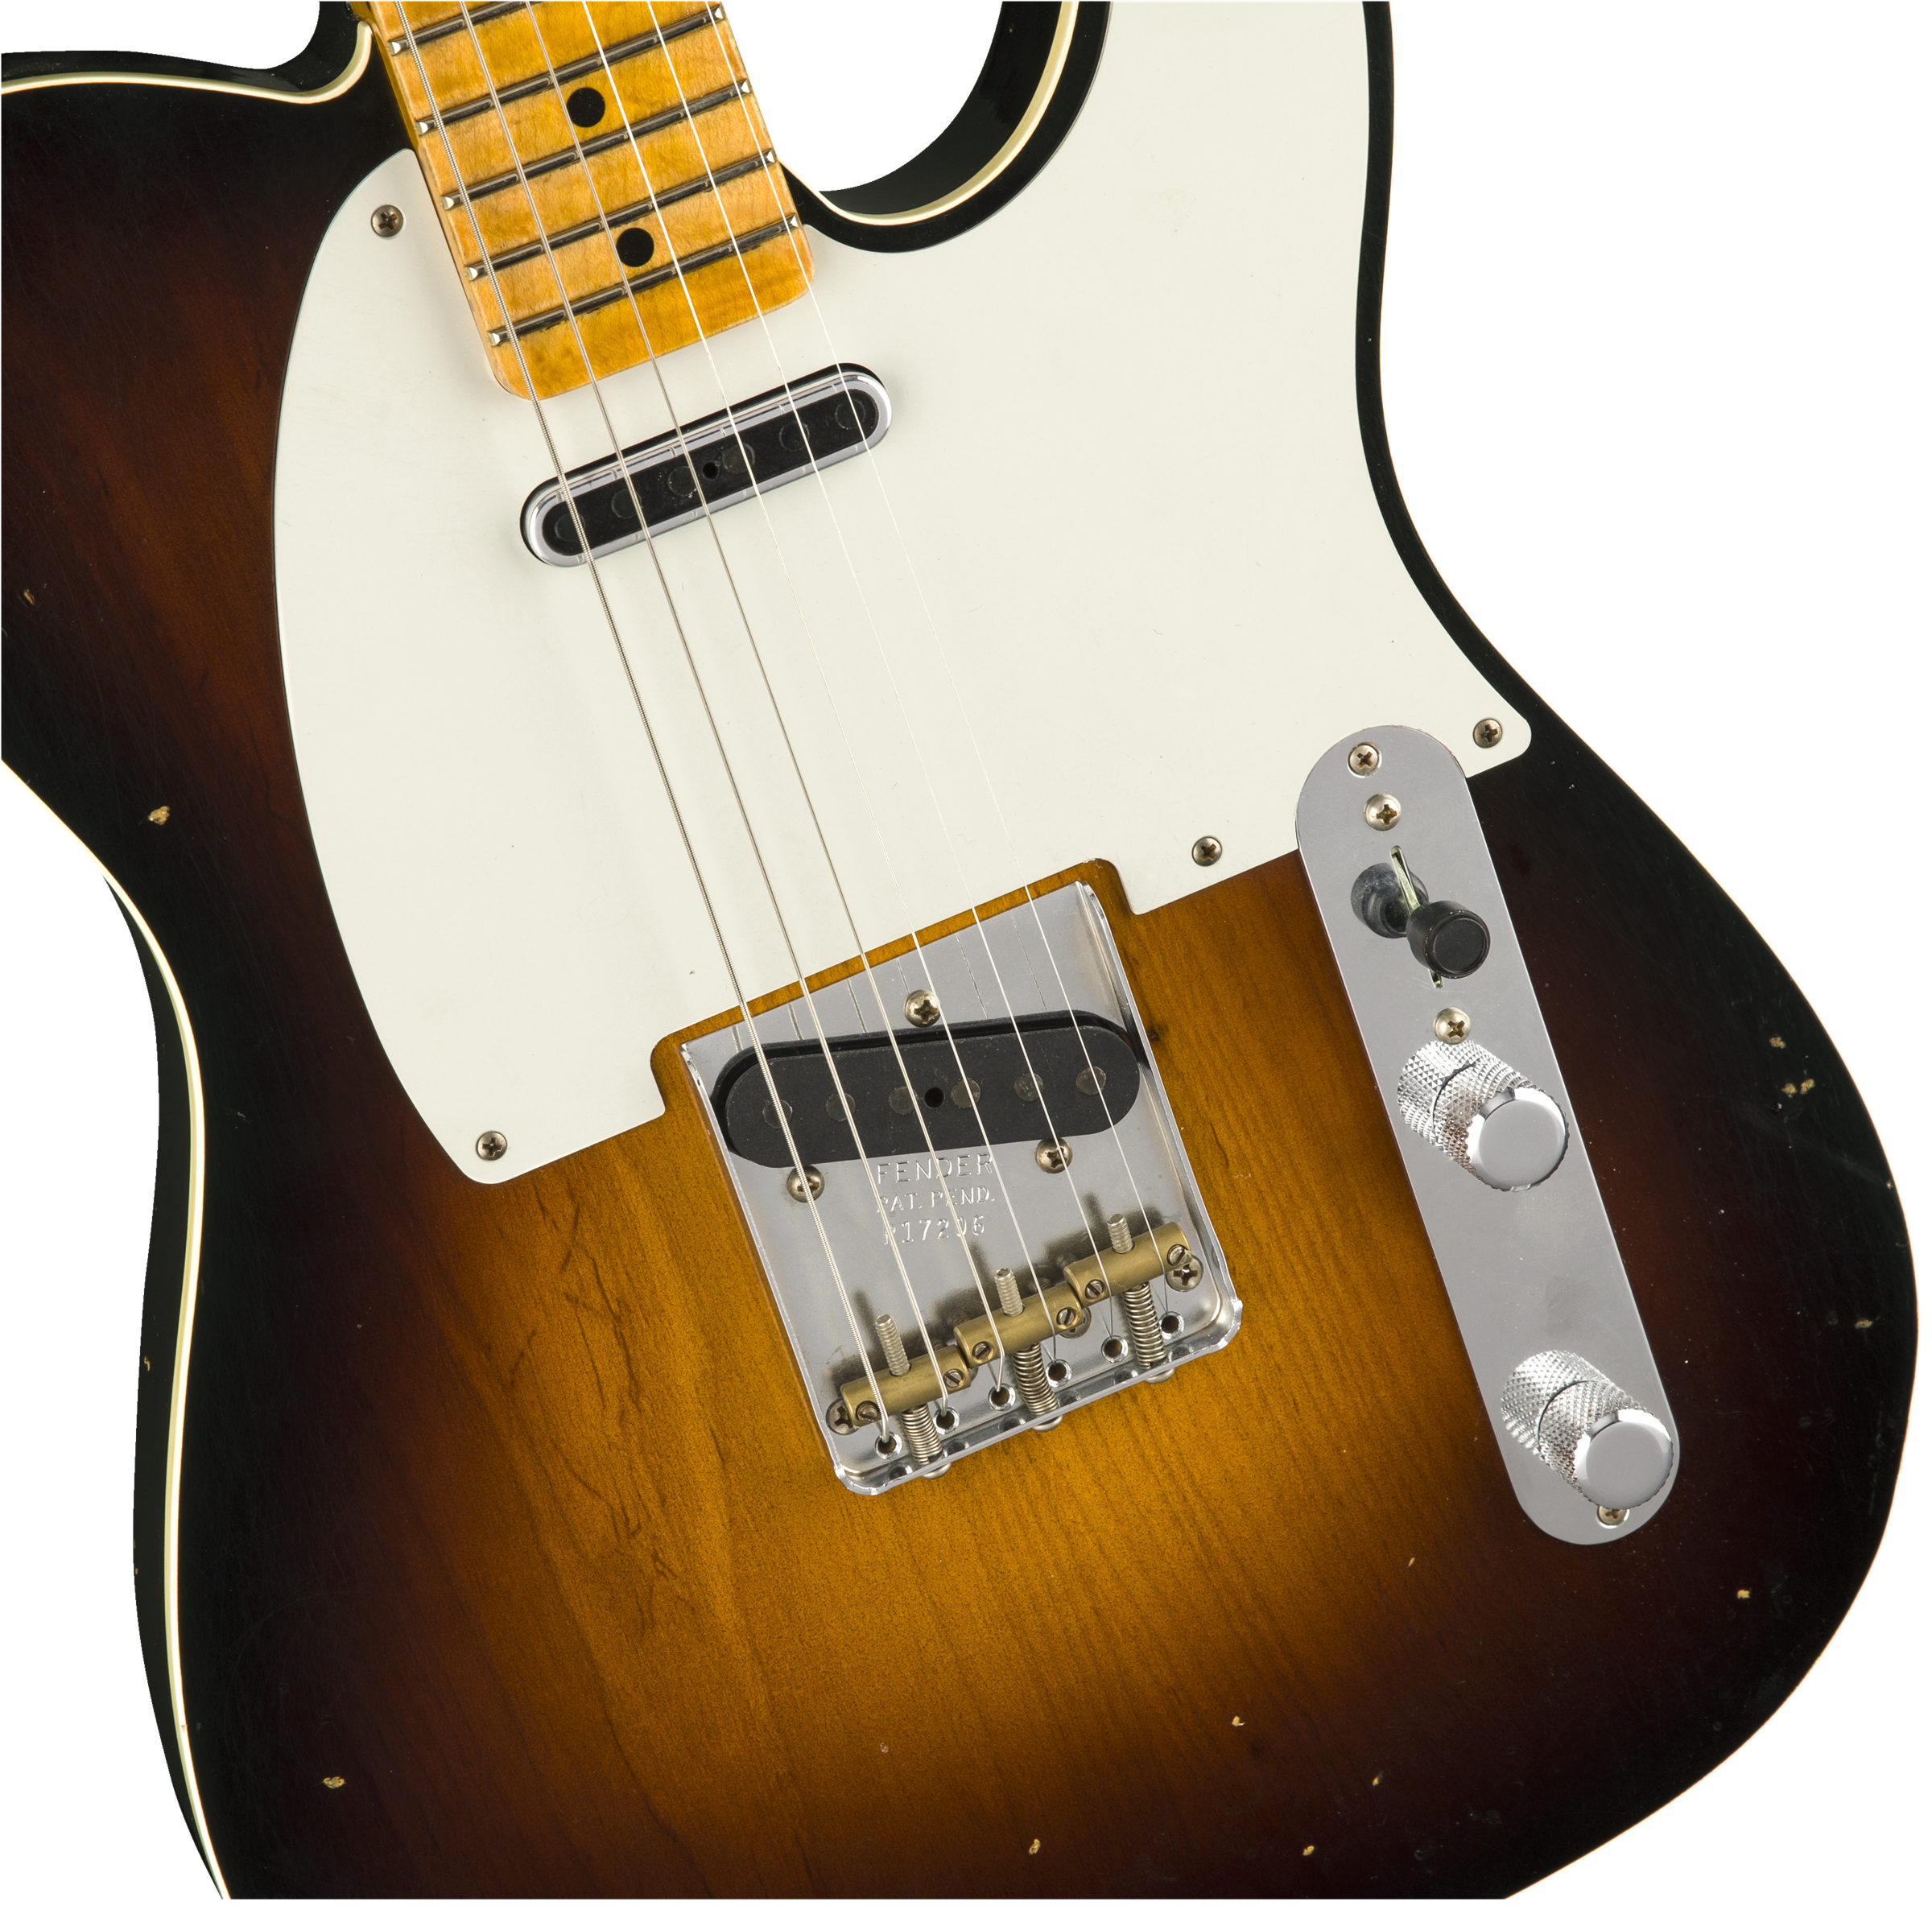 2 Pickup Wiring Fender Esquire Diagrams Data Base Schematics 2018 Limited Double Special Journeyman Relic Rh Fendercustomshop Com On Guitar